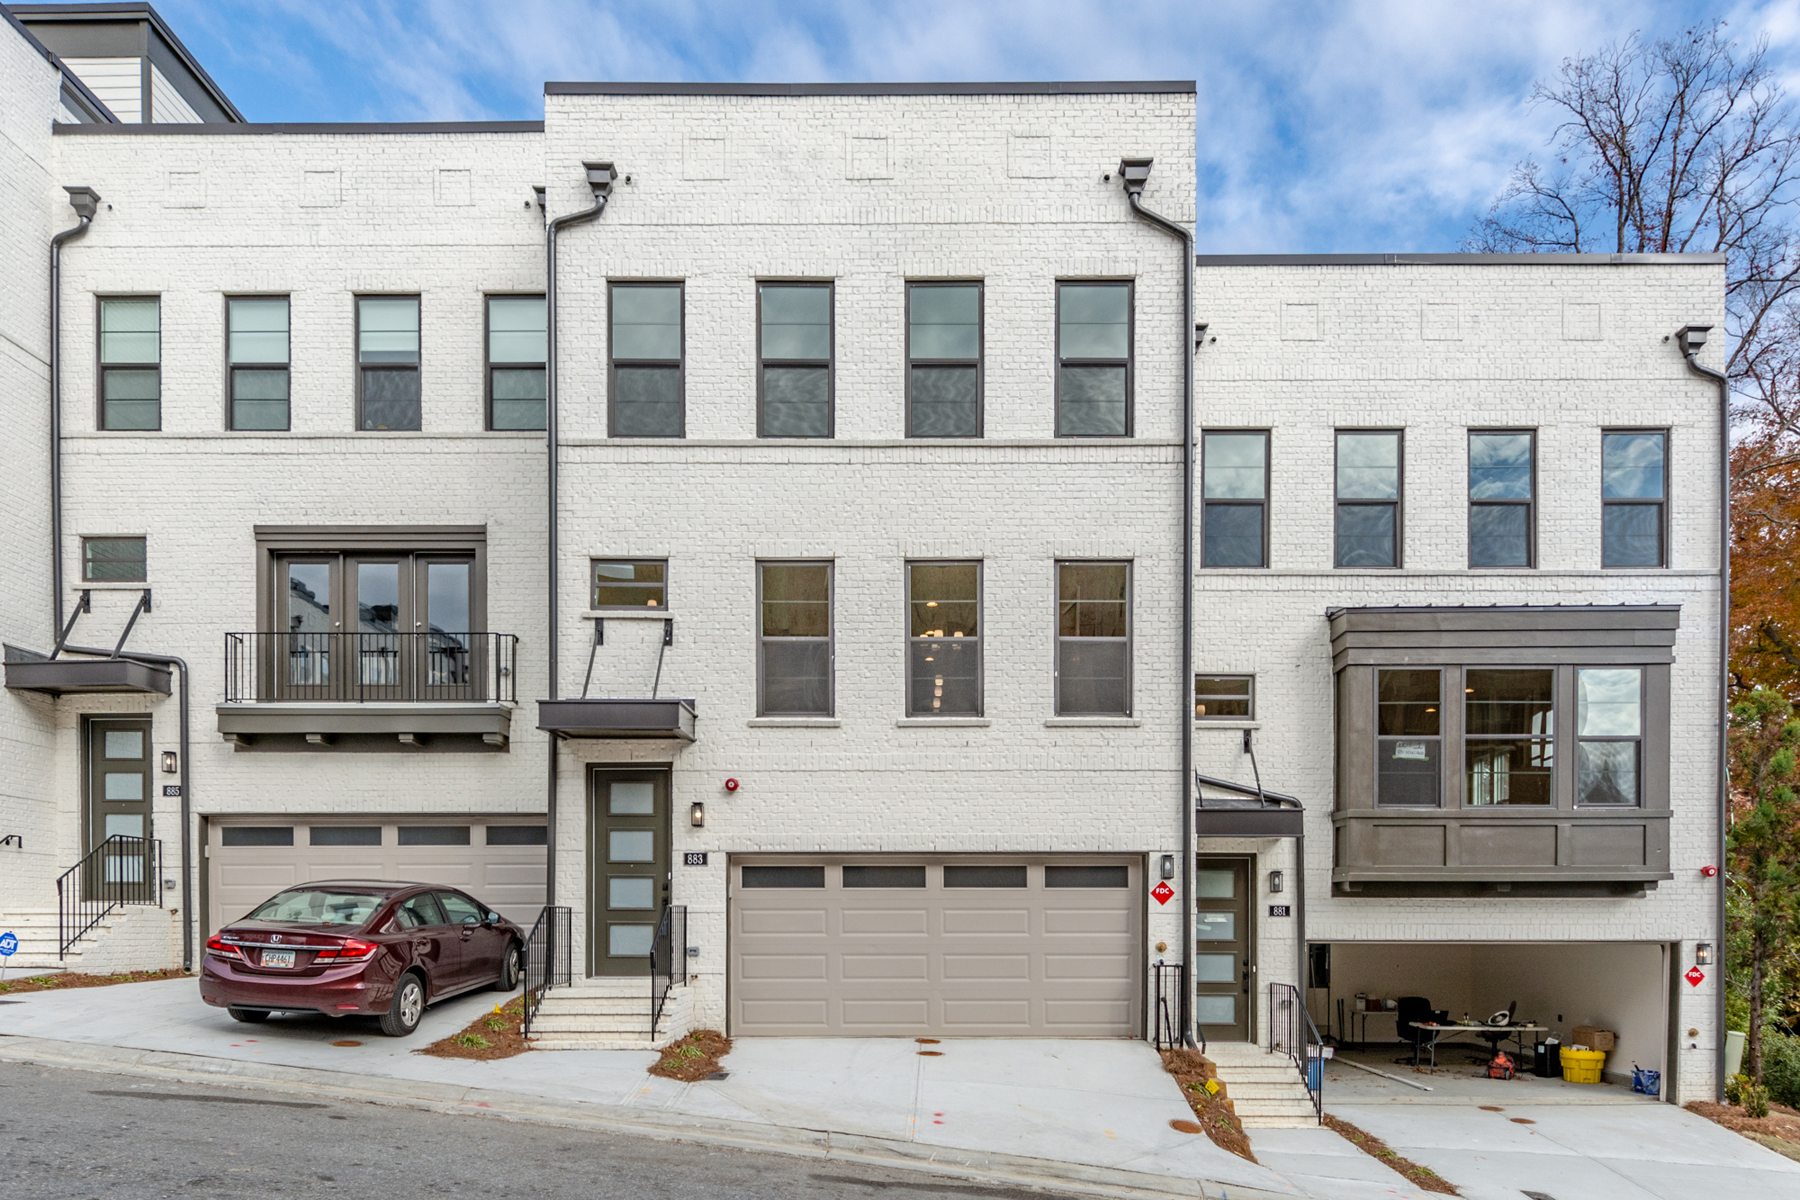 Townhouse for Rent at Beautiful Three Story Modern New Construction Townhome 883 Stone Crest Road Atlanta, Georgia 30324 United States